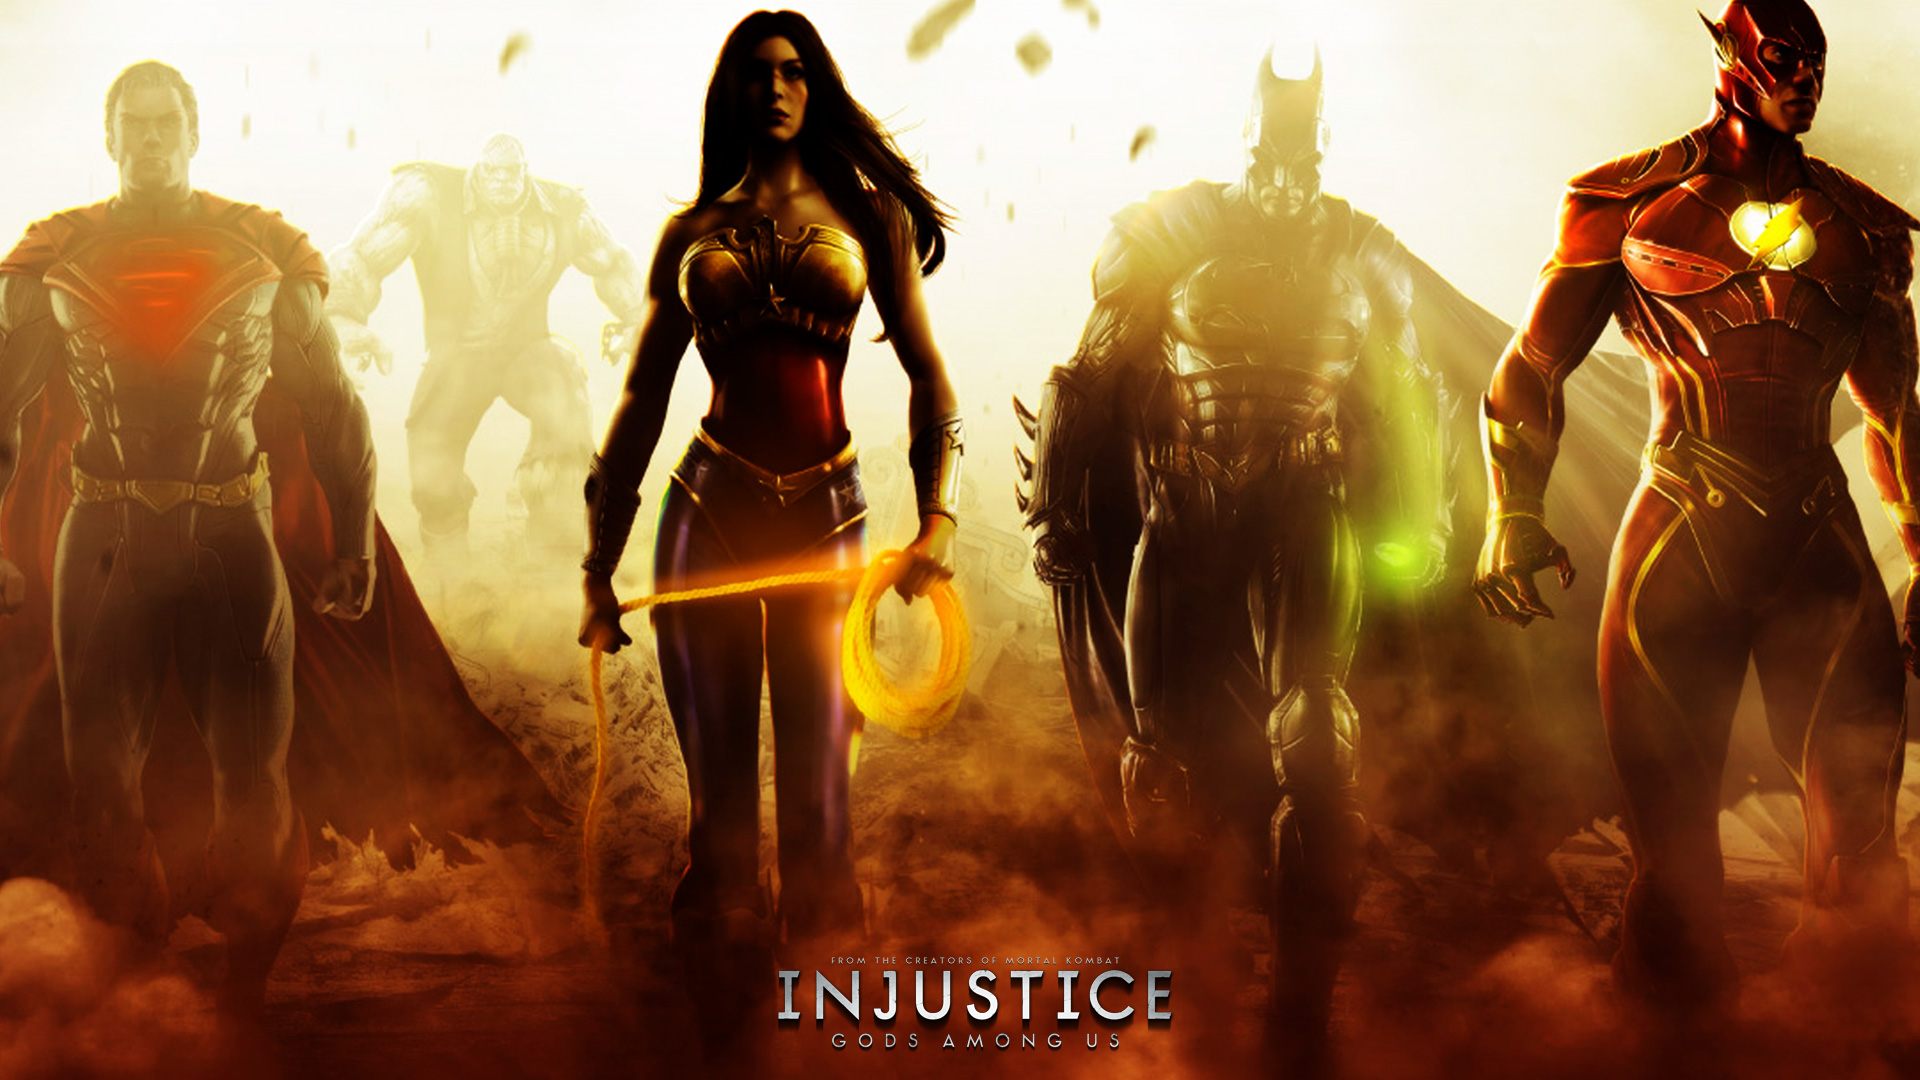 1342249239_injustice-gods-among-us-art_jeuxcapt